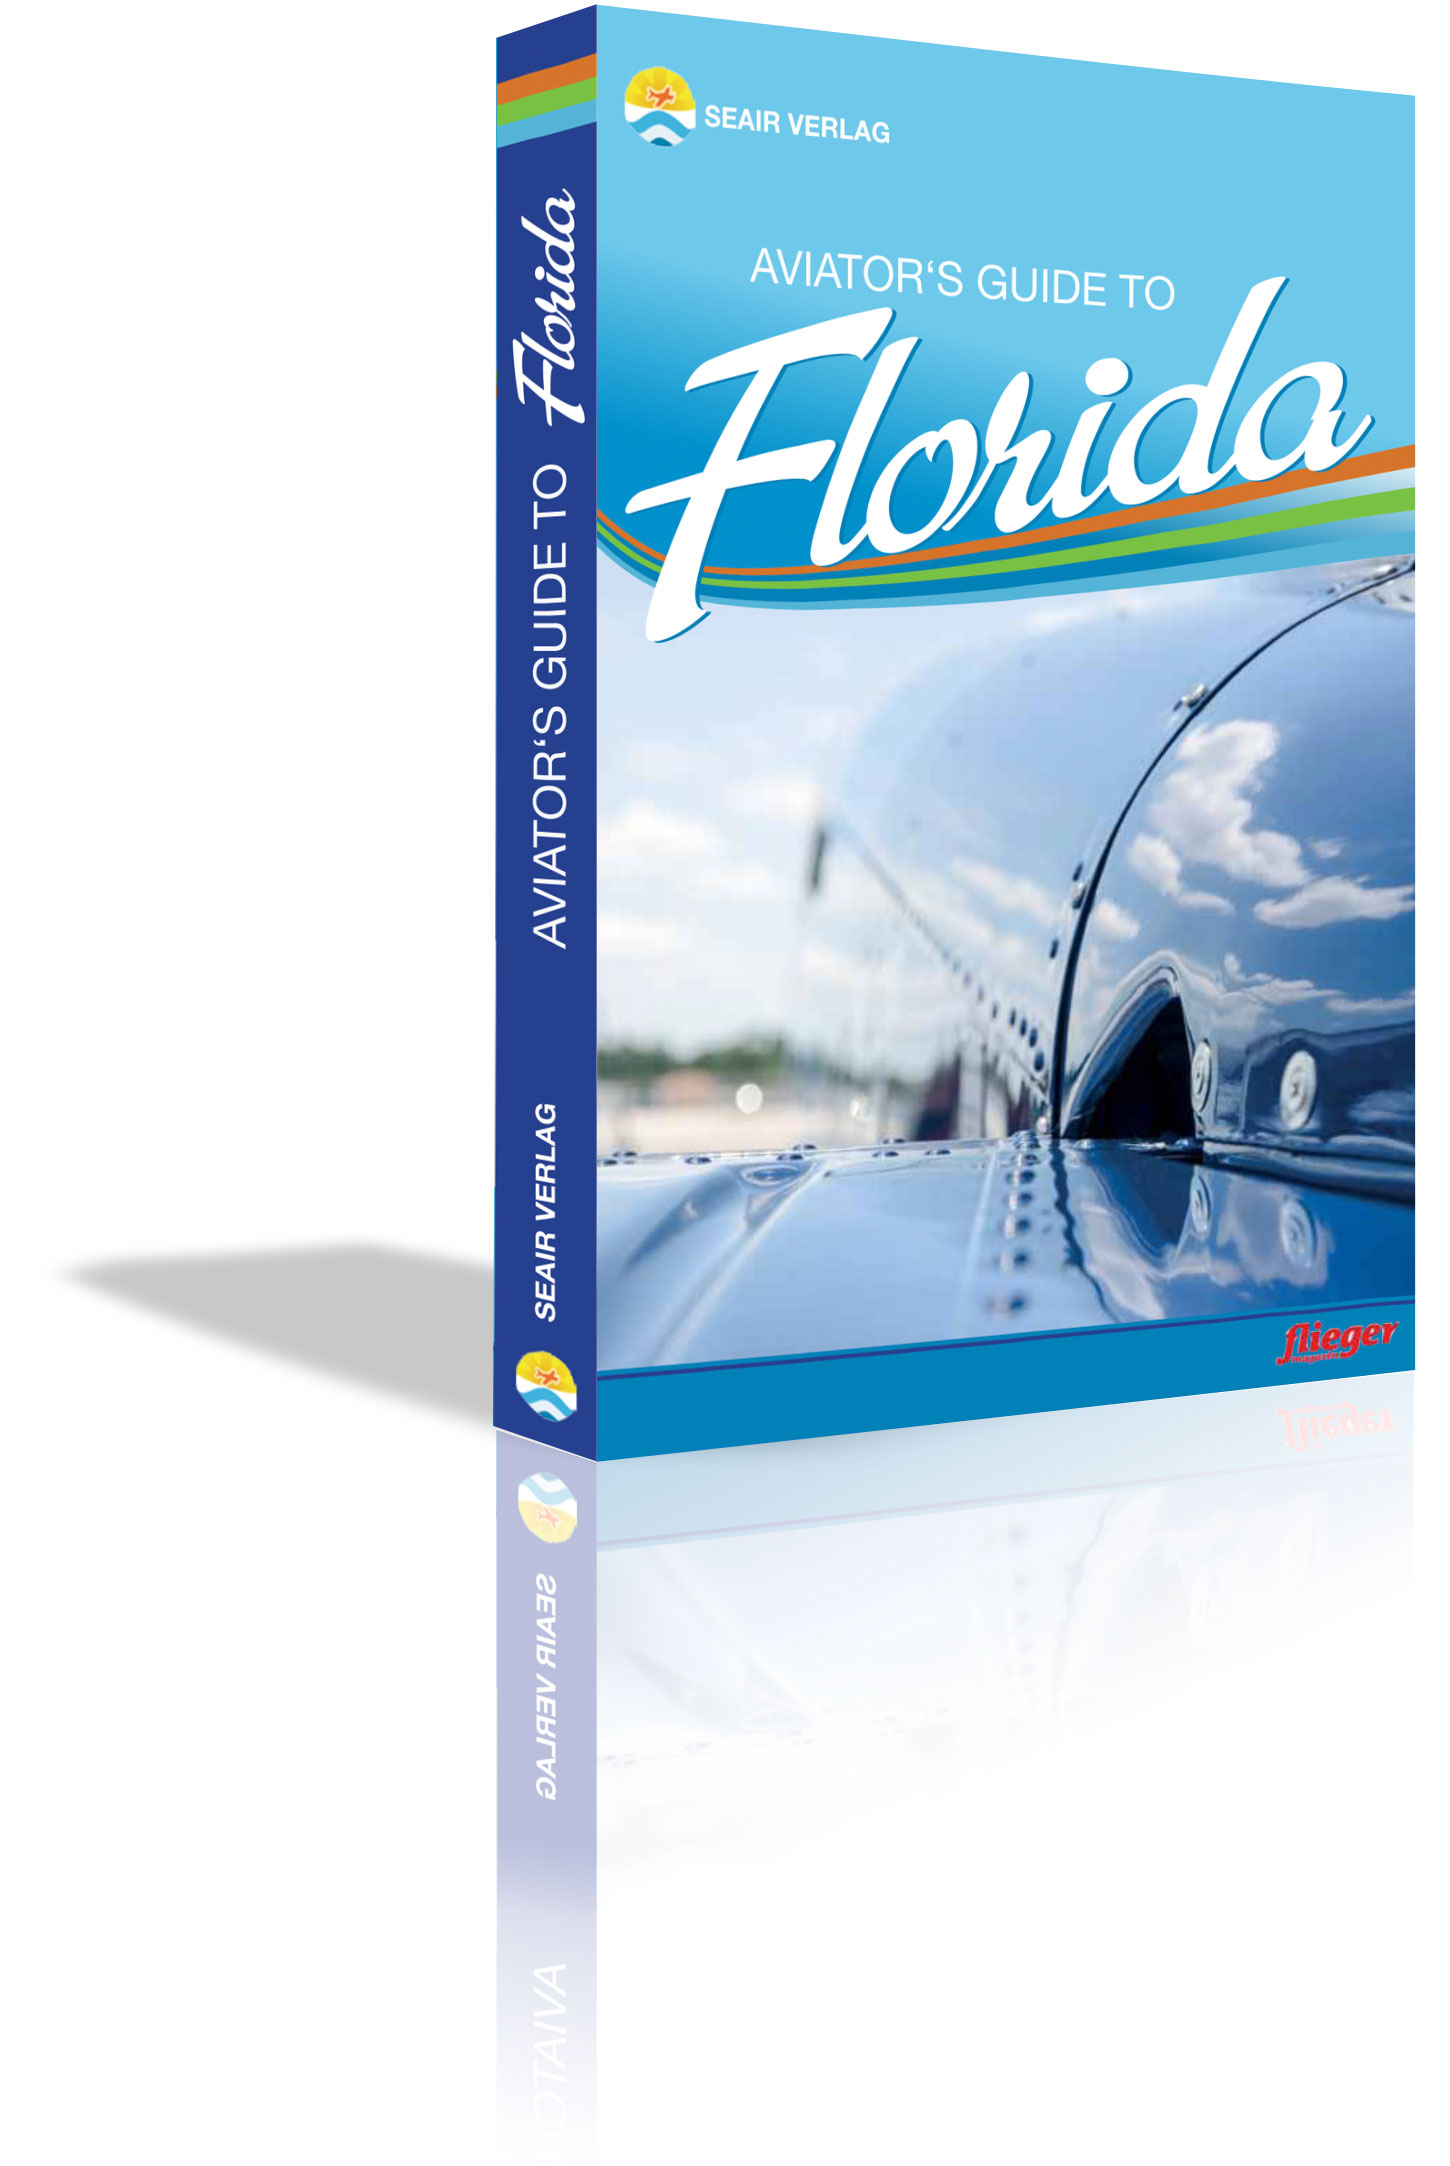 Aviator's Guide to Florida - the new pilot's guide to Florida